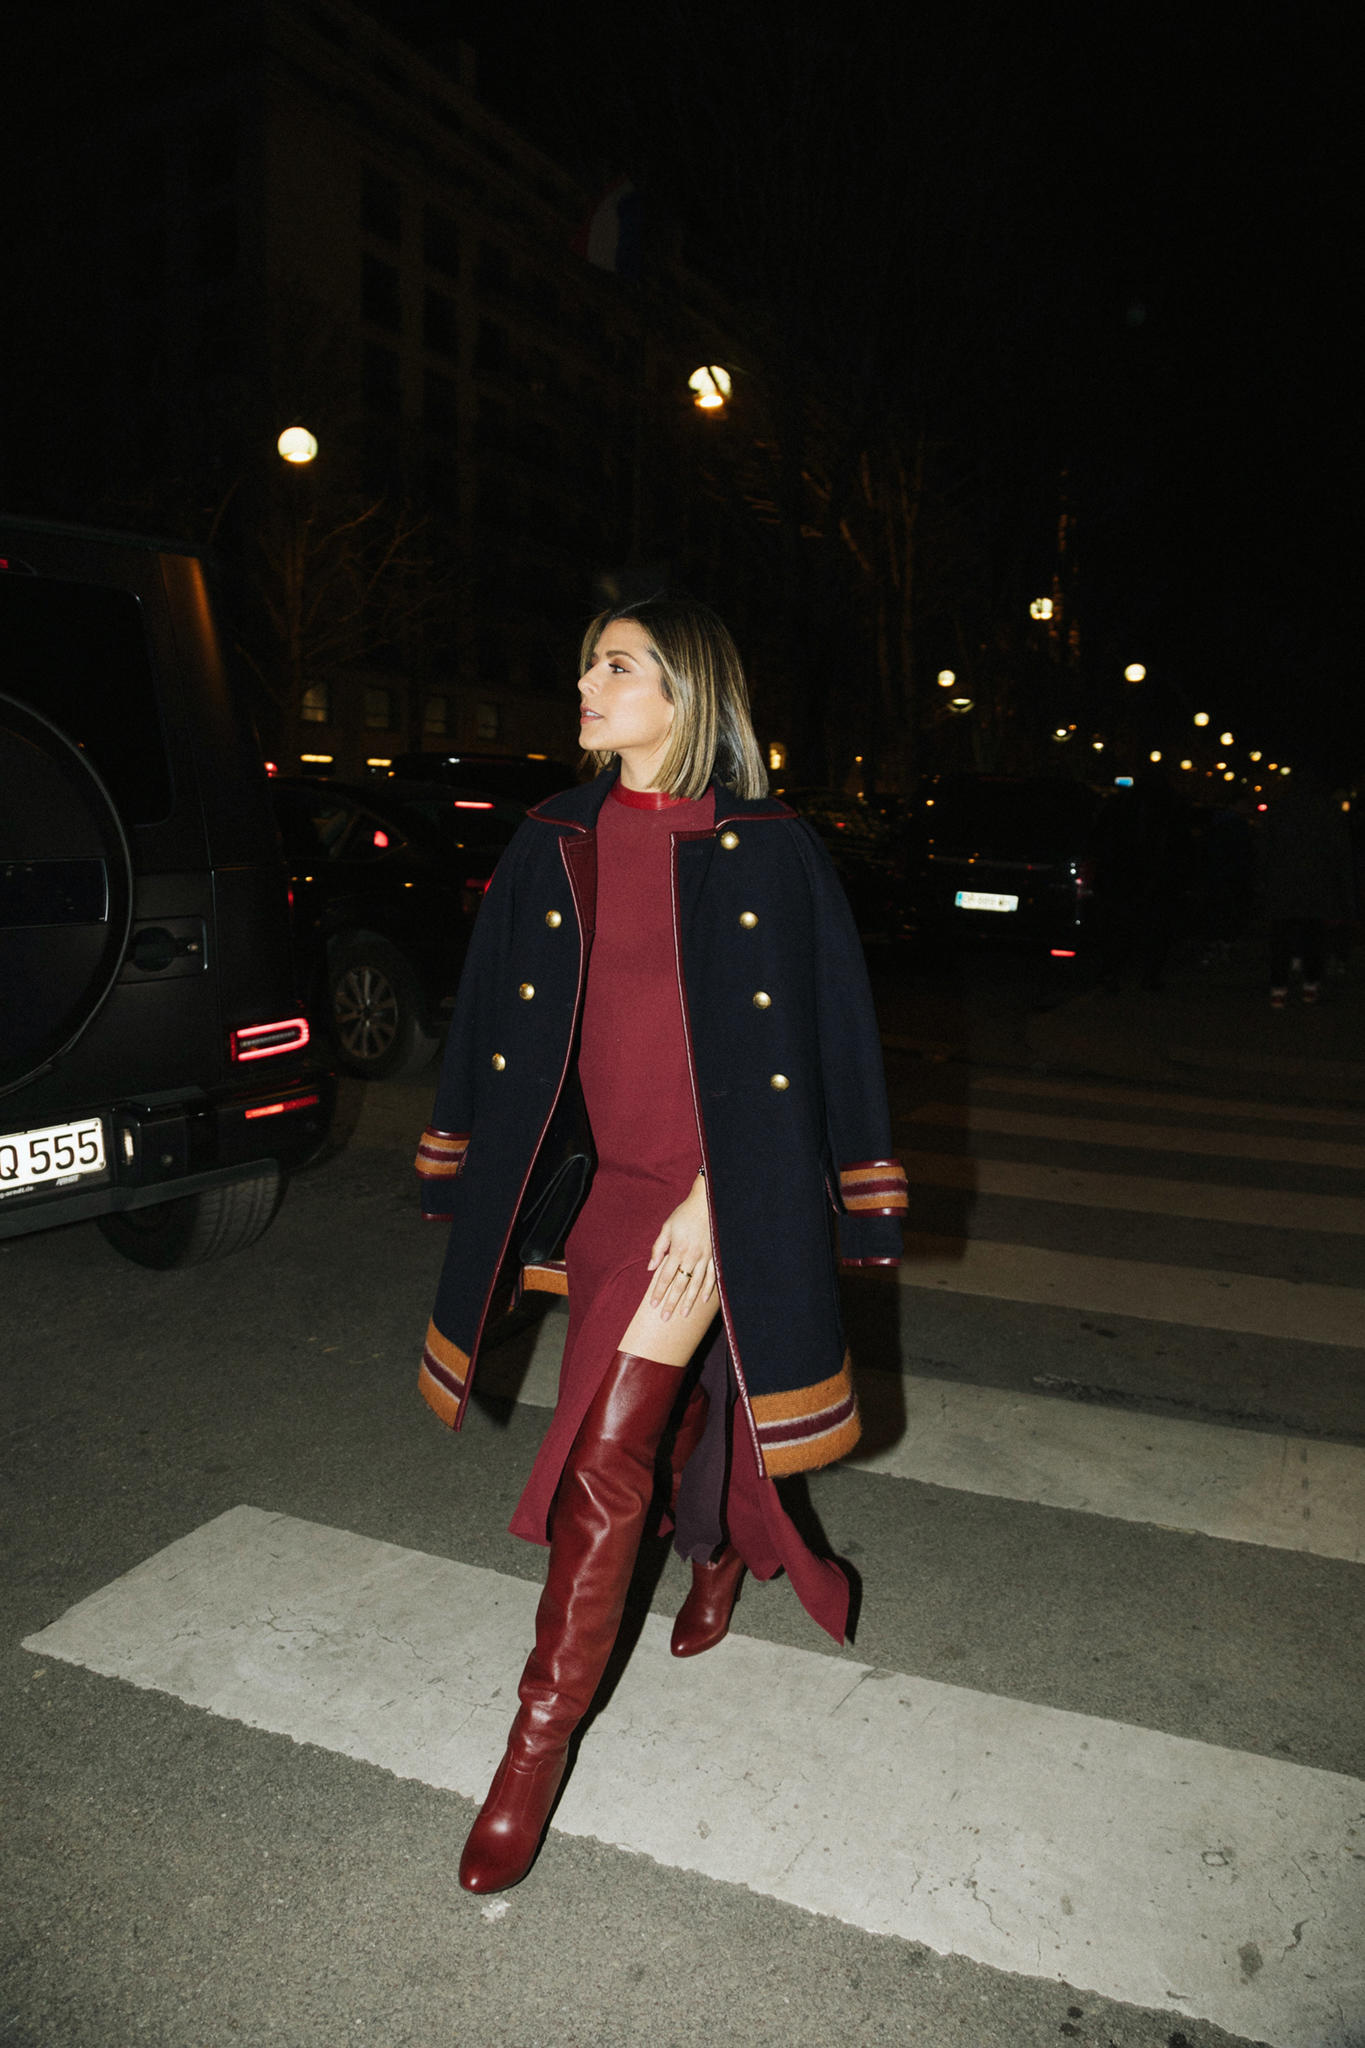 Paris Fashion Week FW19 Recap by Pam Hetlinger | TheGirlFromPanama.com | paris fashion week street style, fashion week spring 2019 street style, monochromatic burgundy outfit, military jacket trend